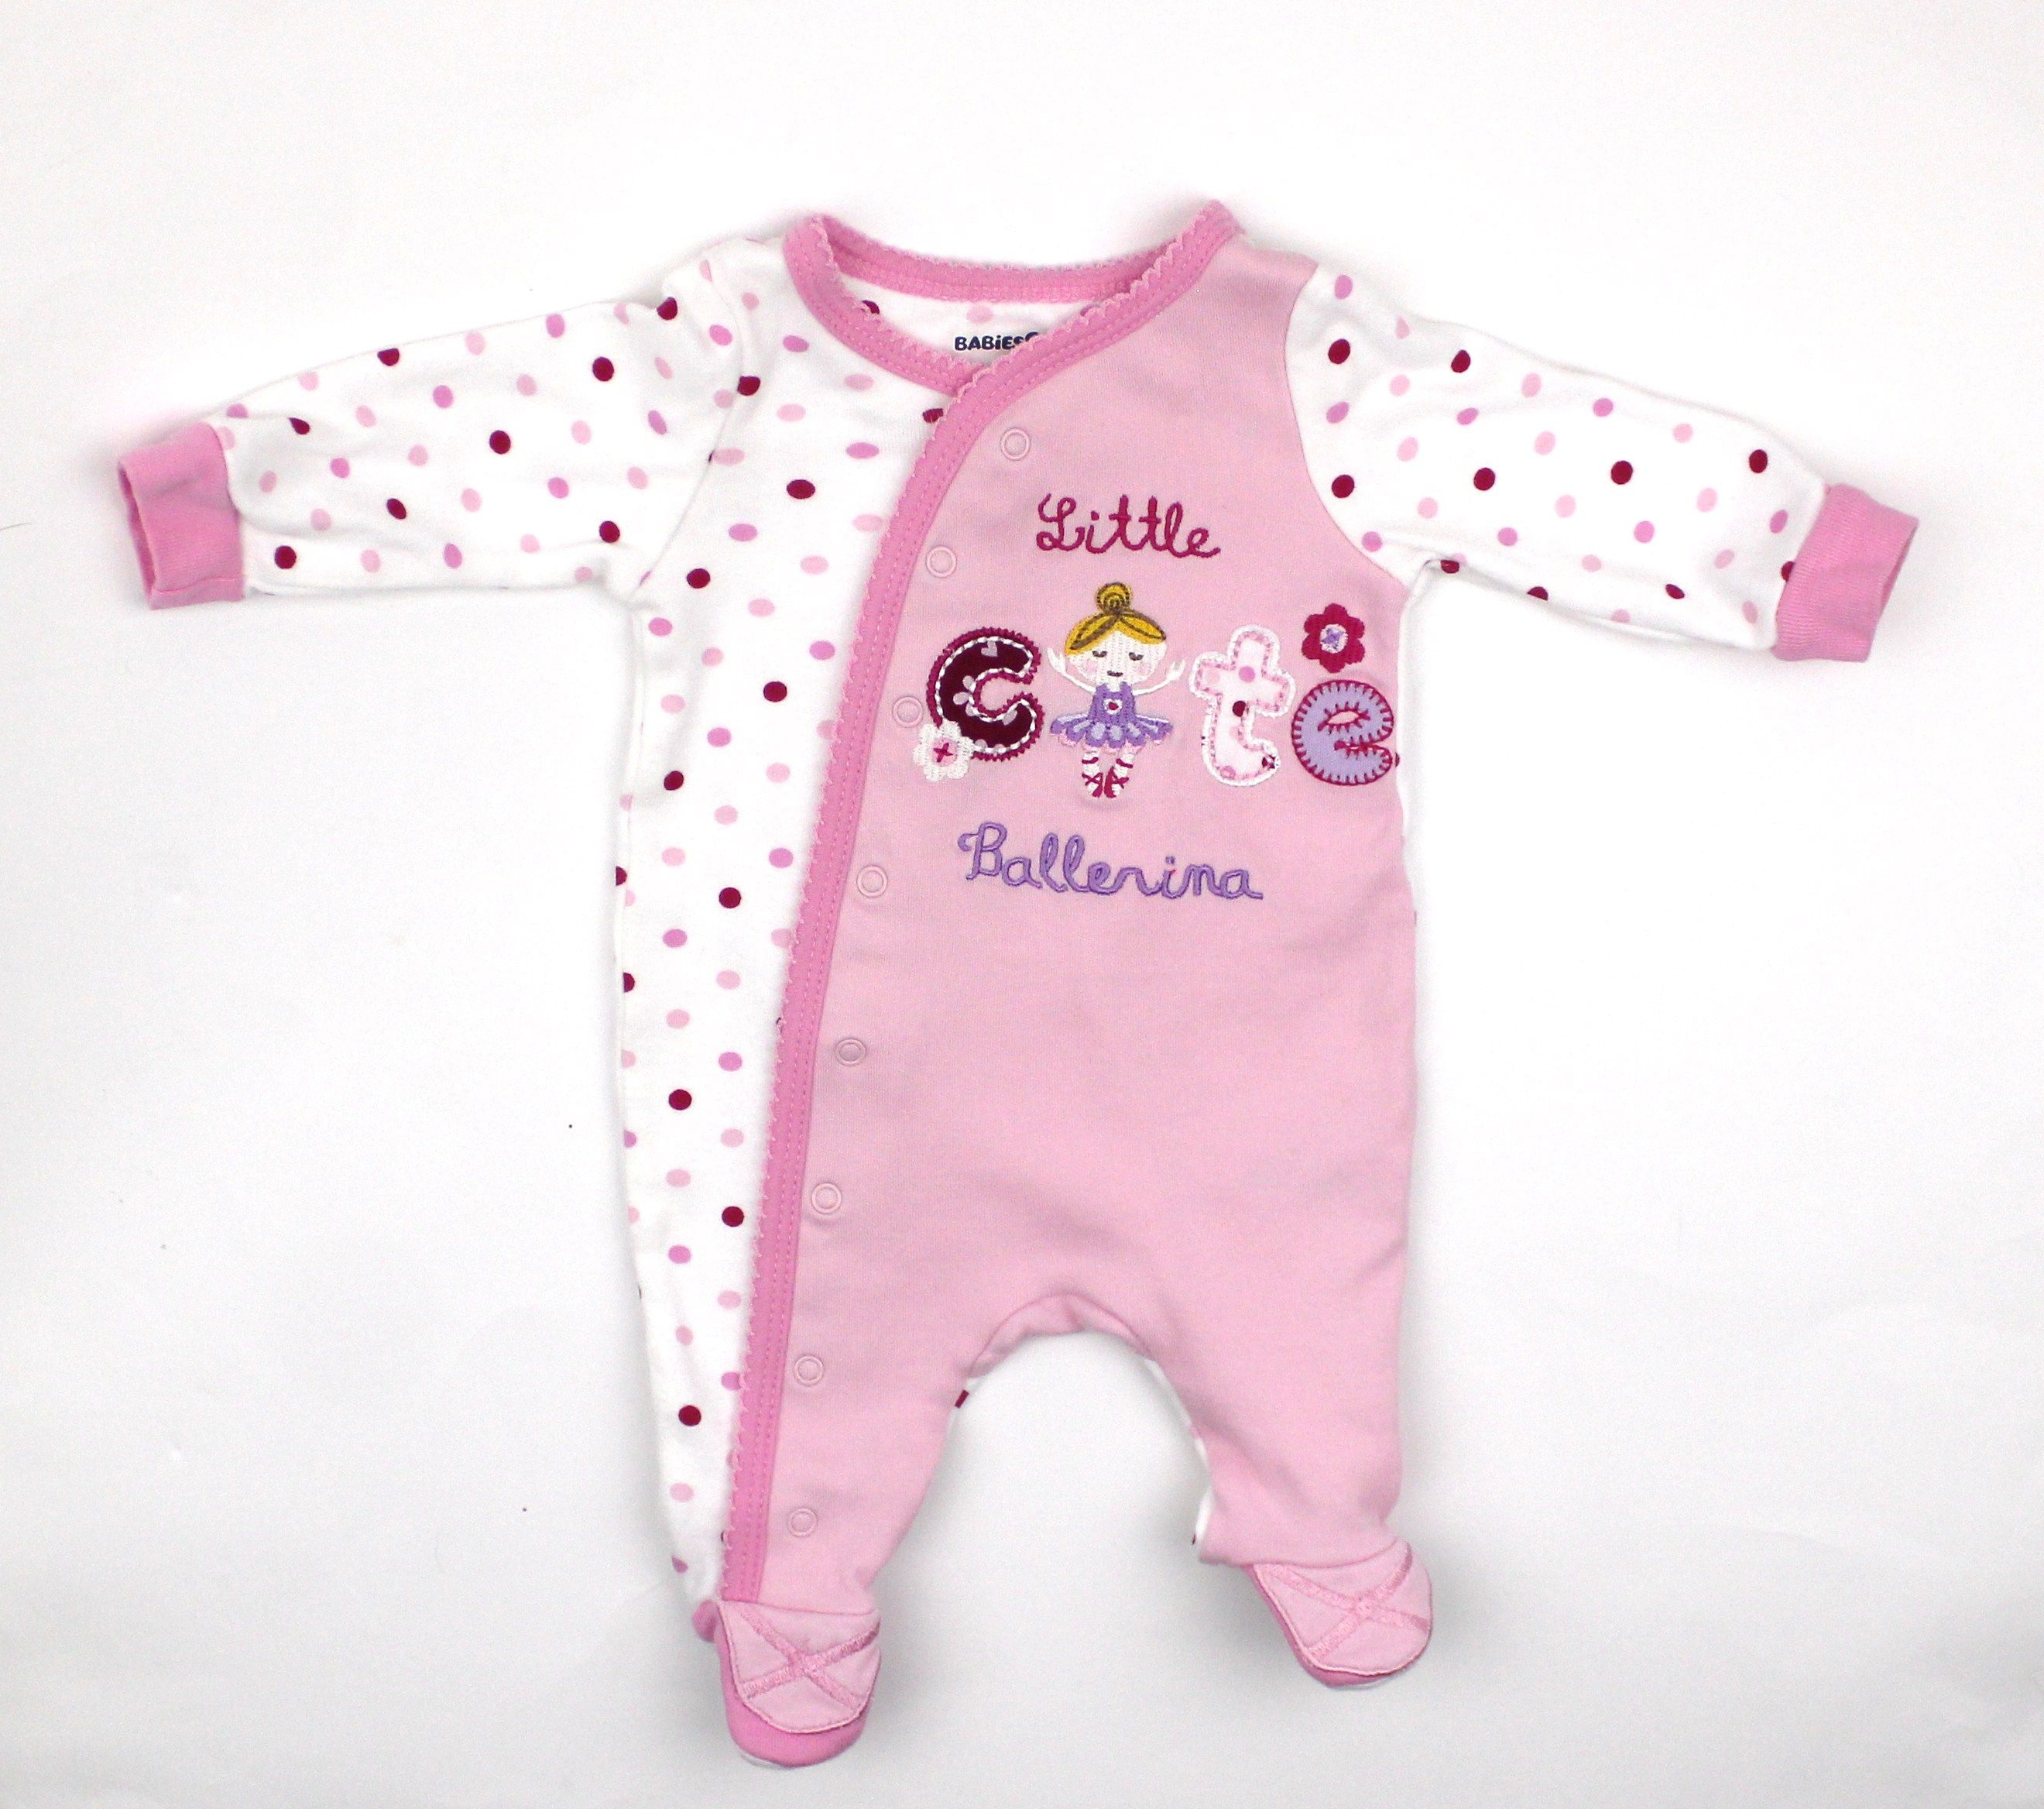 Newborn Baby Girl Pink Sleeper with Ballerina only 3.50